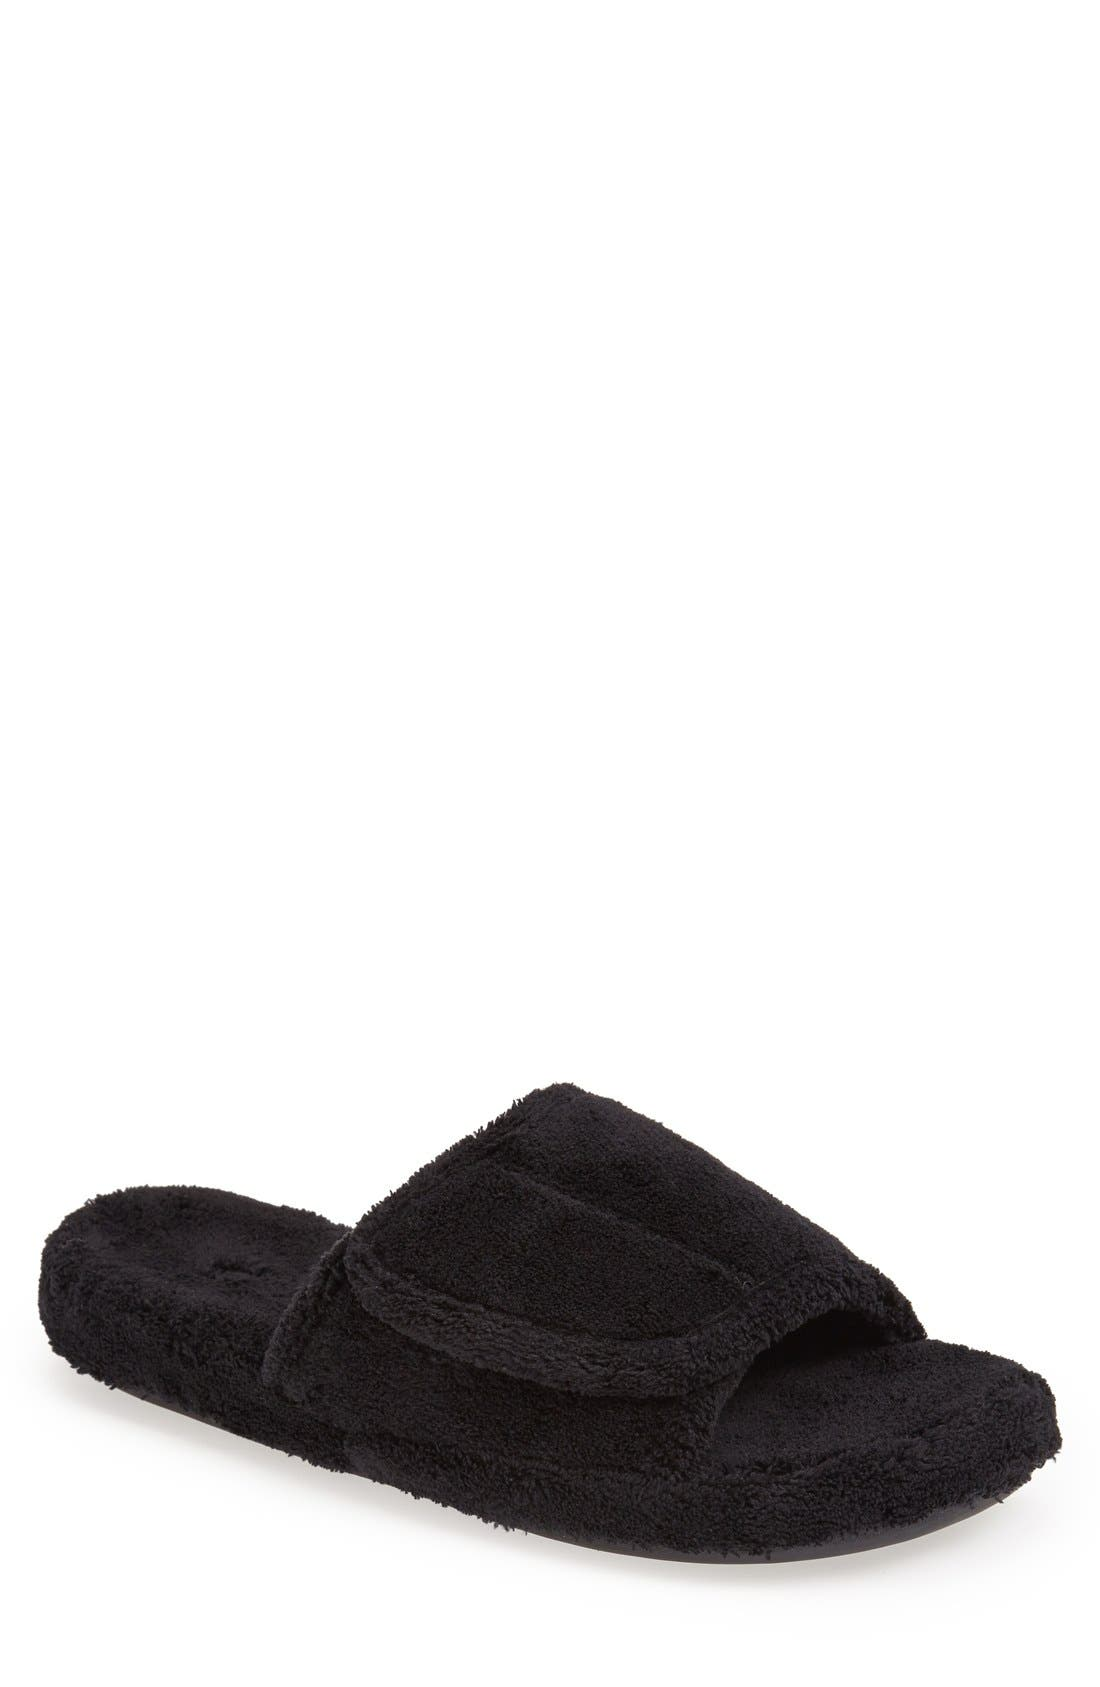 'Spa' Slipper,                             Main thumbnail 1, color,                             BLACK